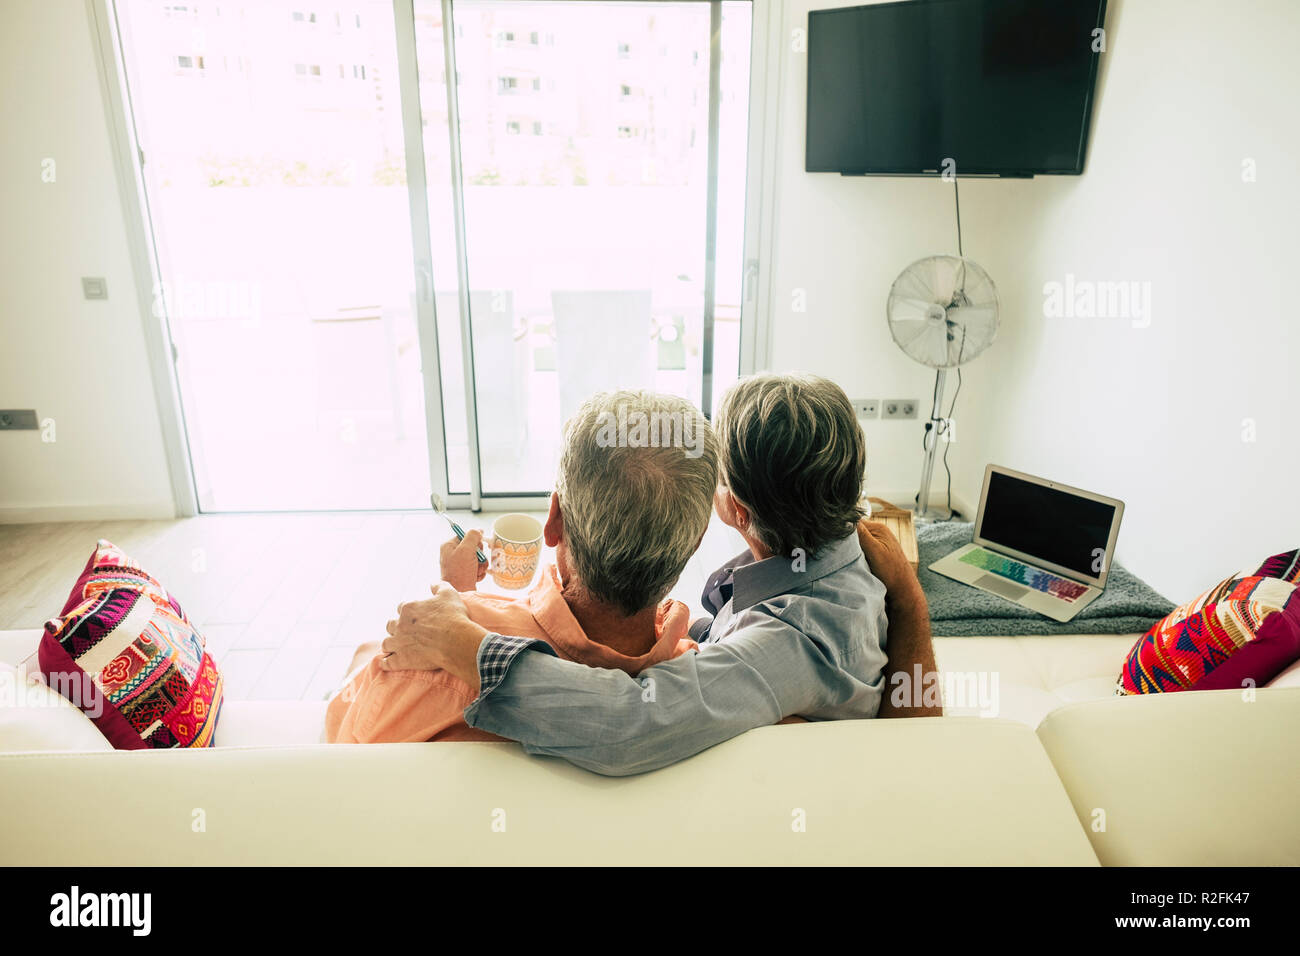 couple of senior sitting at home on a white sofa looking outside te window door to the garden. enjoying retired time relaxing together with love and satisfaction for the end of the work. laptop on the side - Stock Image